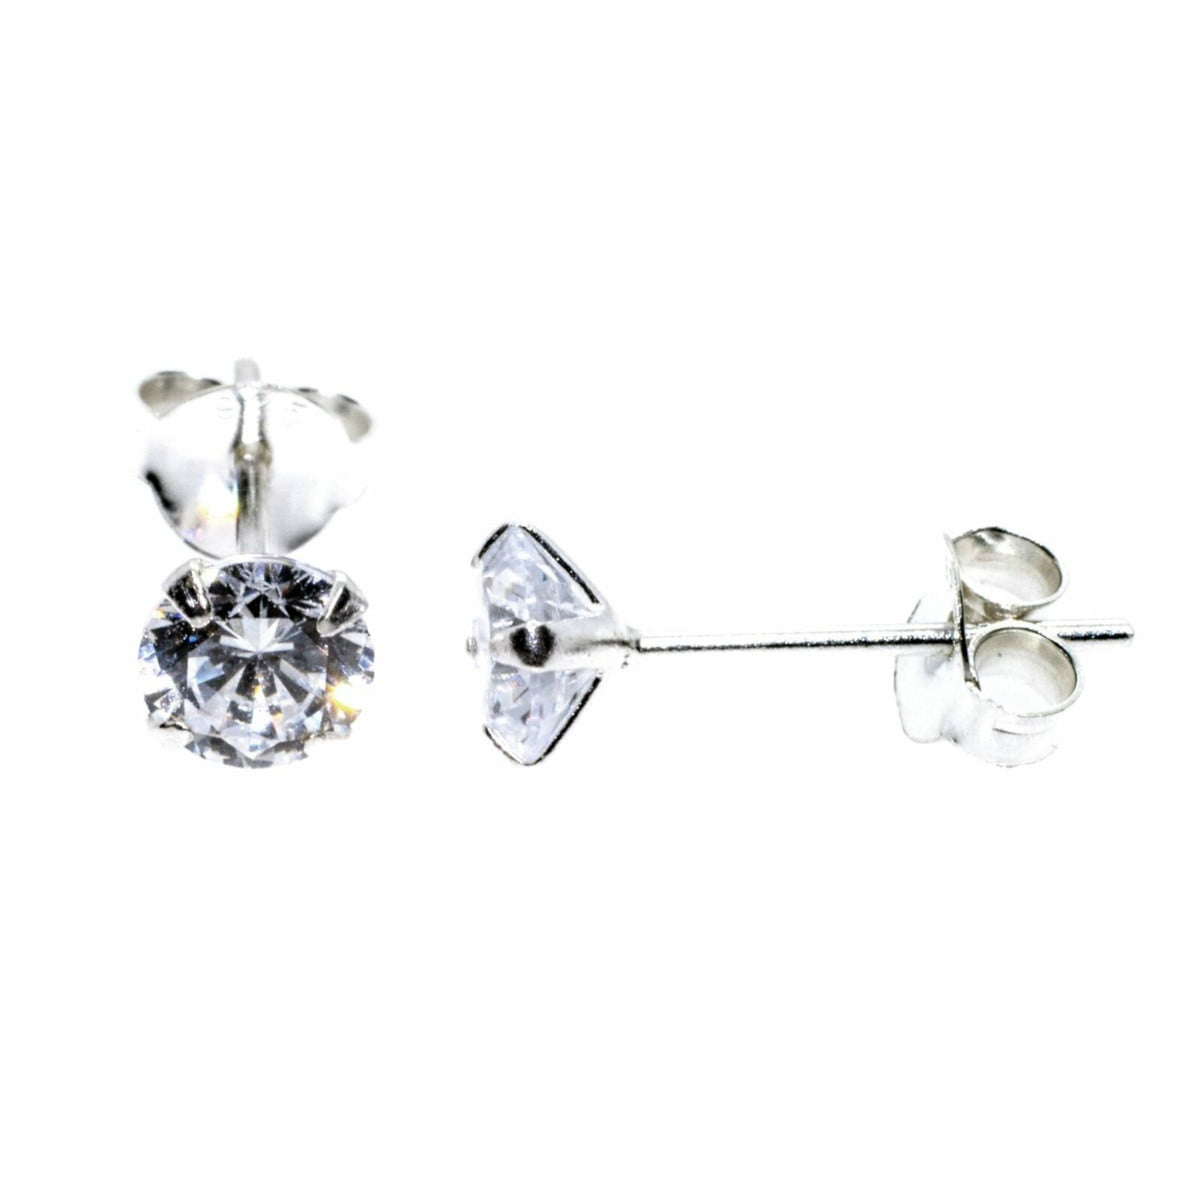 5 mm clear CZ stud round solitaire earrings in sterling silver